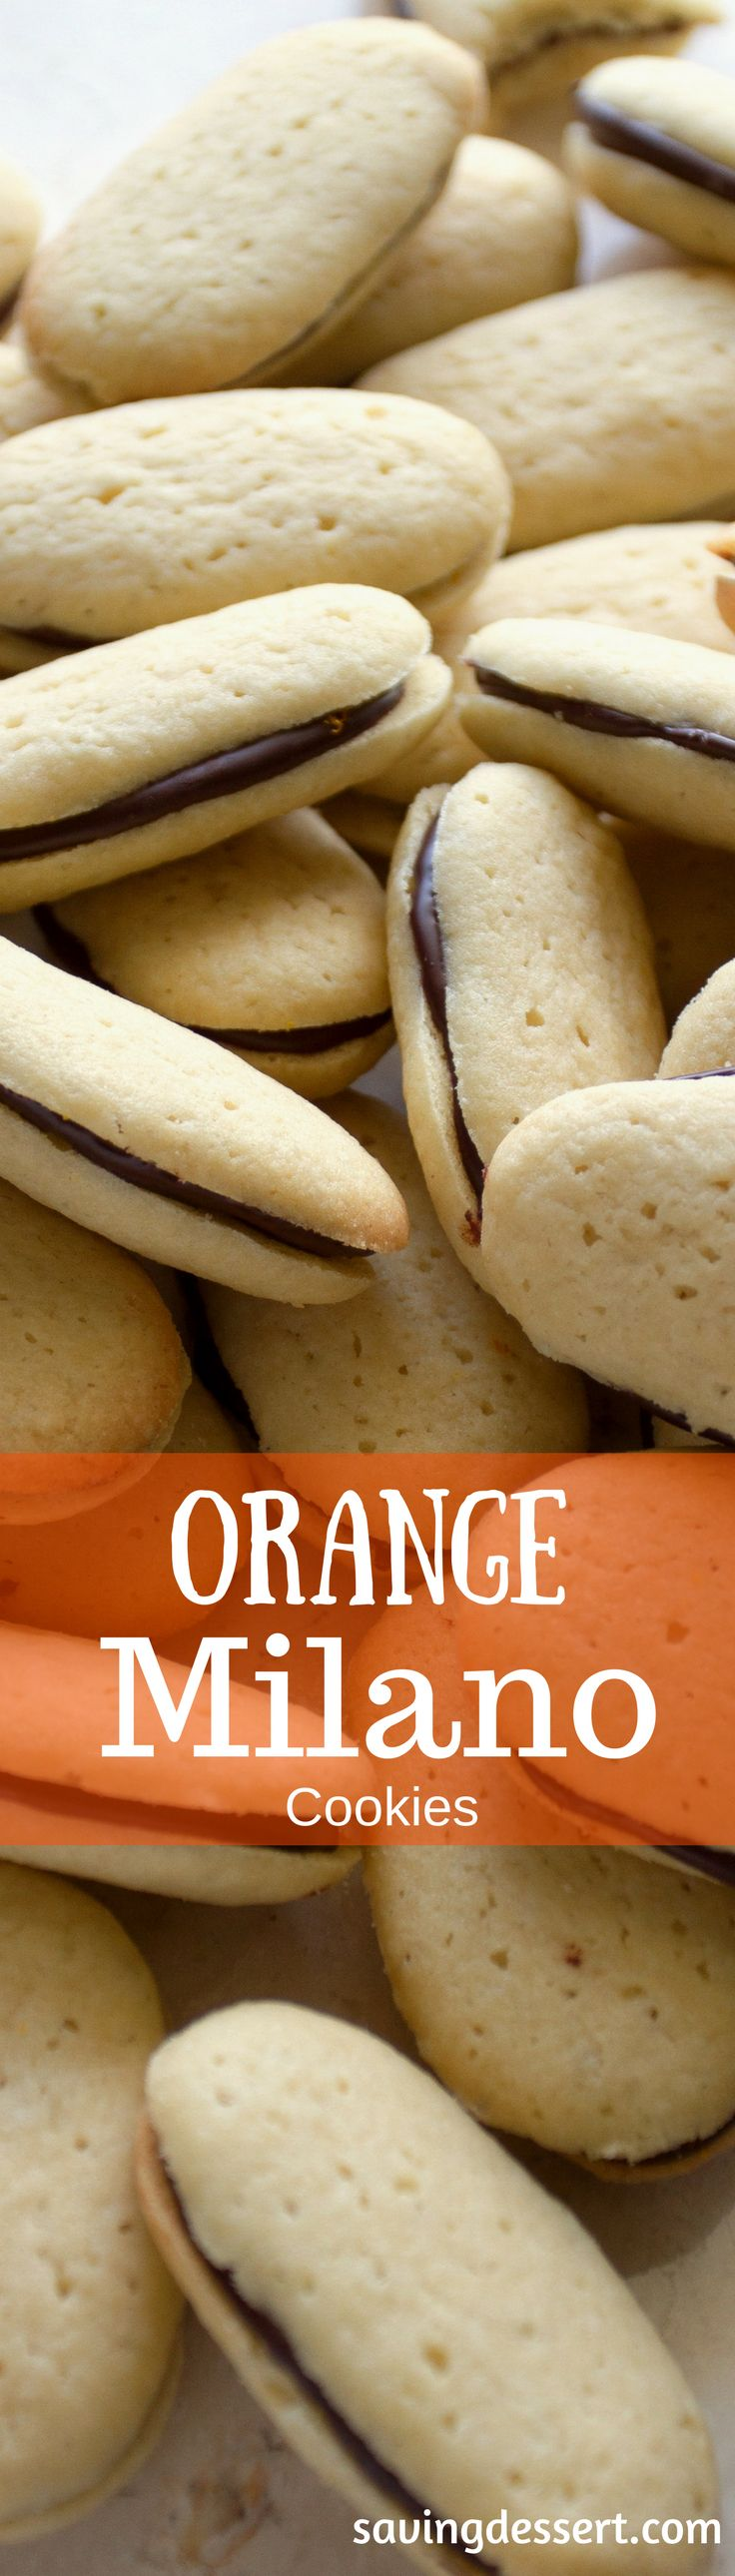 Homemade {CopyCat} Orange Milano Cookies ~ delicious vanilla cookies with a dark chocolate center flavored with orange zest  www.savingdessert.com